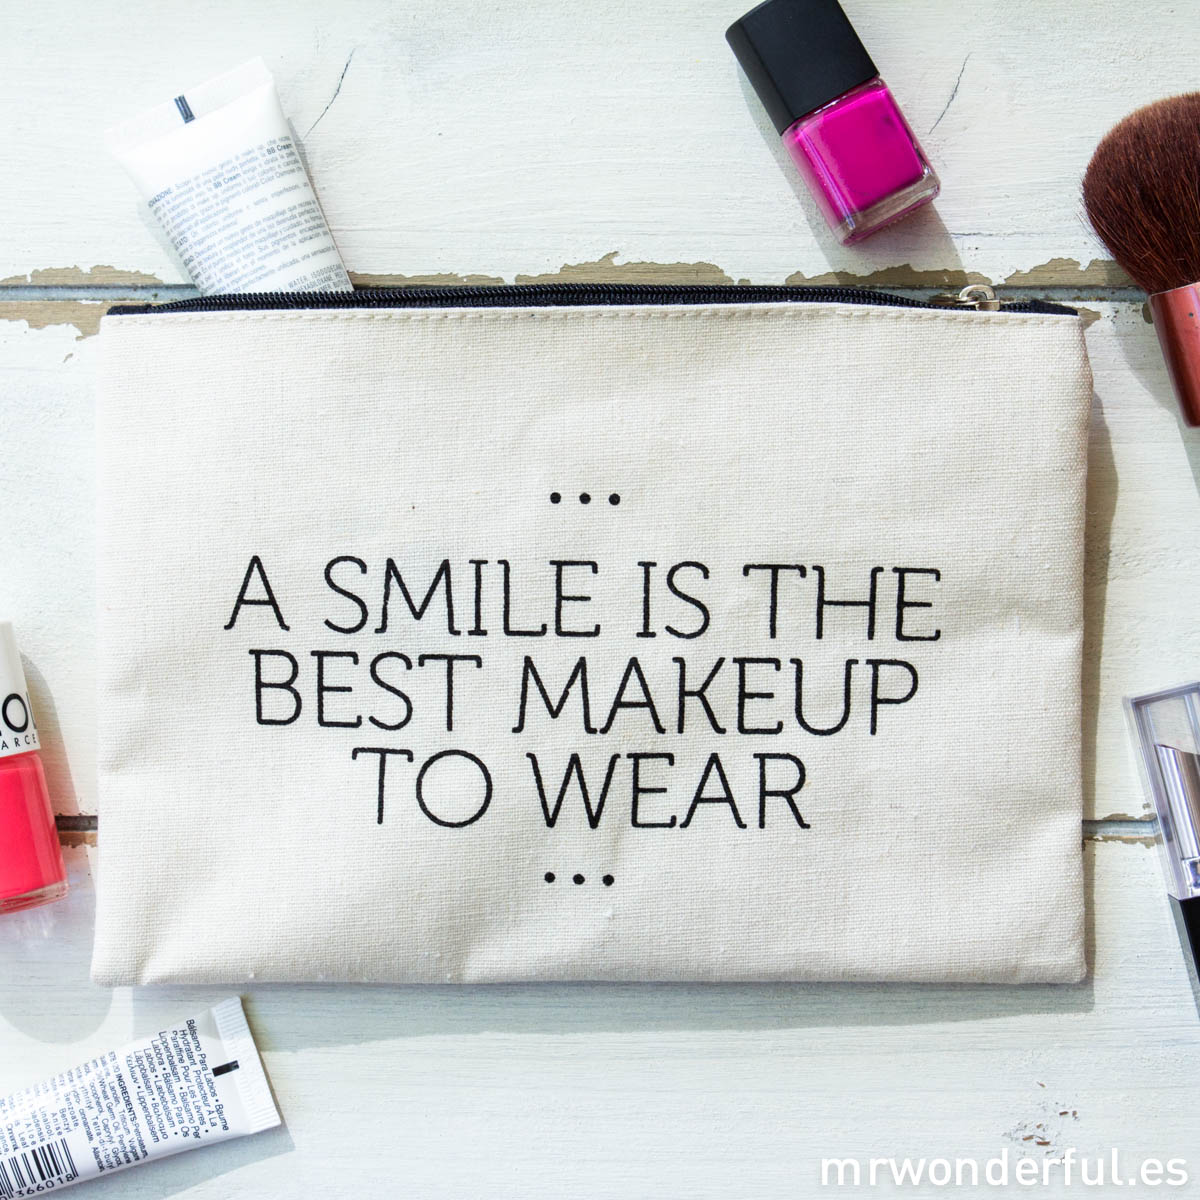 mrwonderful_LS0230_4_Neceser-tela-cremallera_smile-best-makeup-wear-1